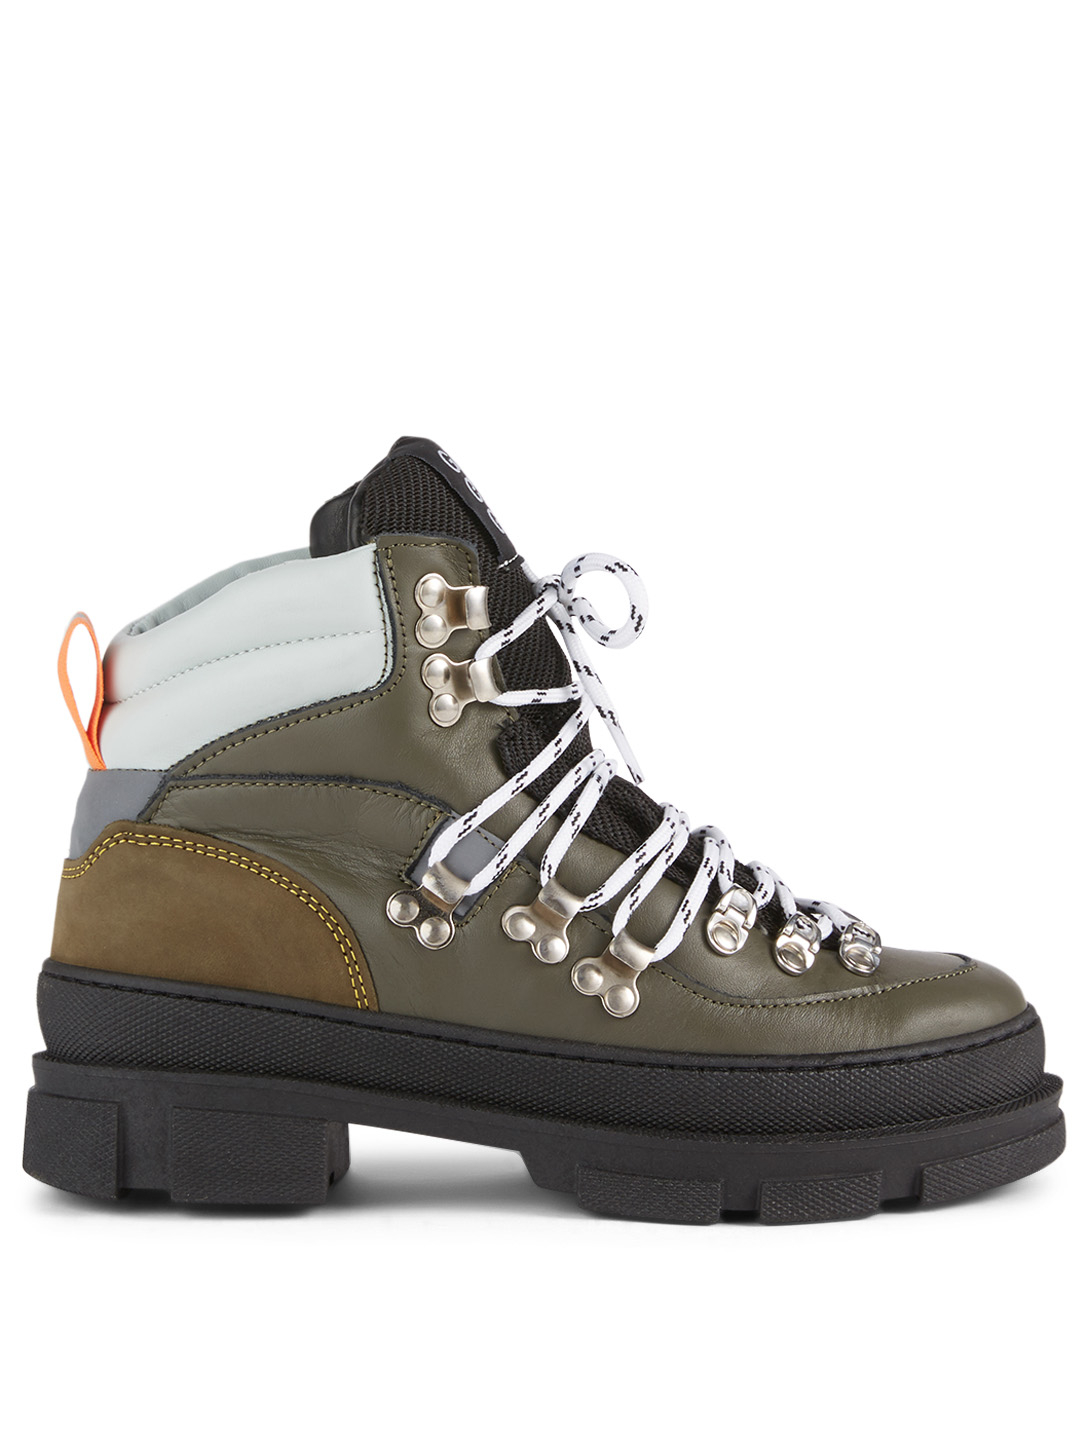 GANNI Sporty Hiking Leather Lace-Up Ankle Boots Women's Green